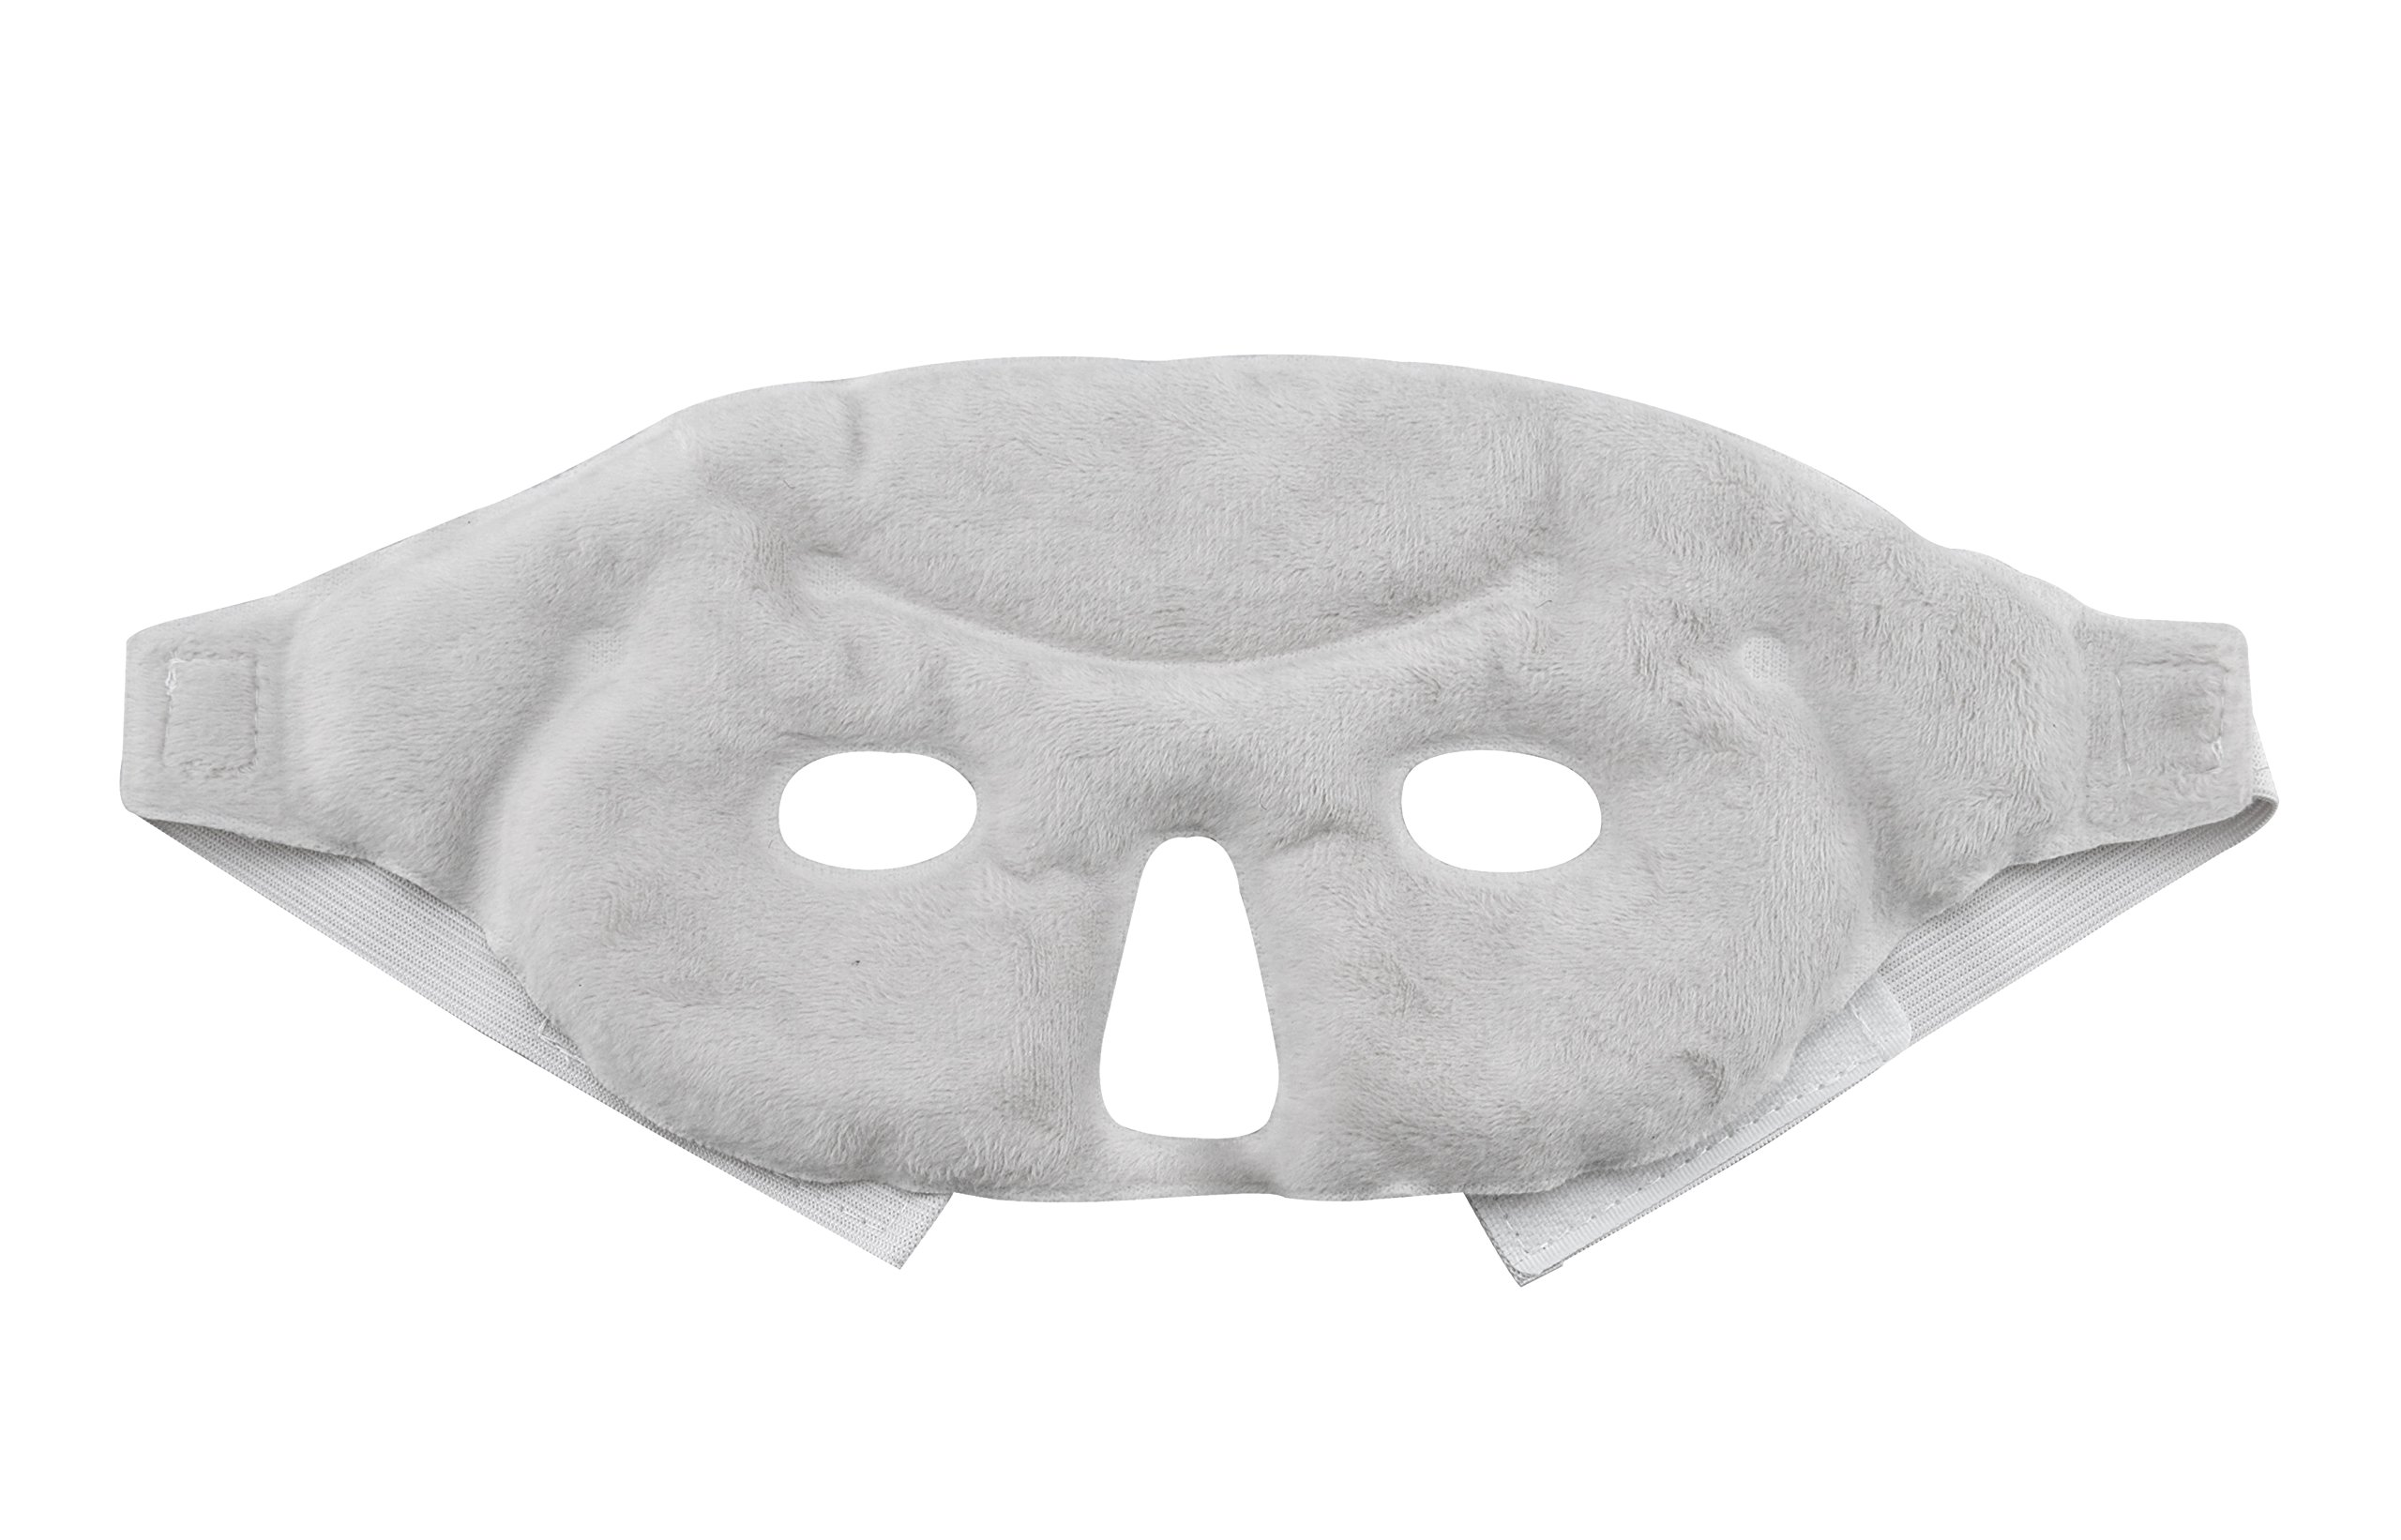 Hot and Cold Therapy Gel Bead Facial Eye Mask by FOMI Care | Ice Mask for Migraine Headache, Stress Relief | Reduces Eyes Puffiness, Dark Circles | Fabric Back | Freezable, Microwavable (Gray) by FOMI (Image #3)